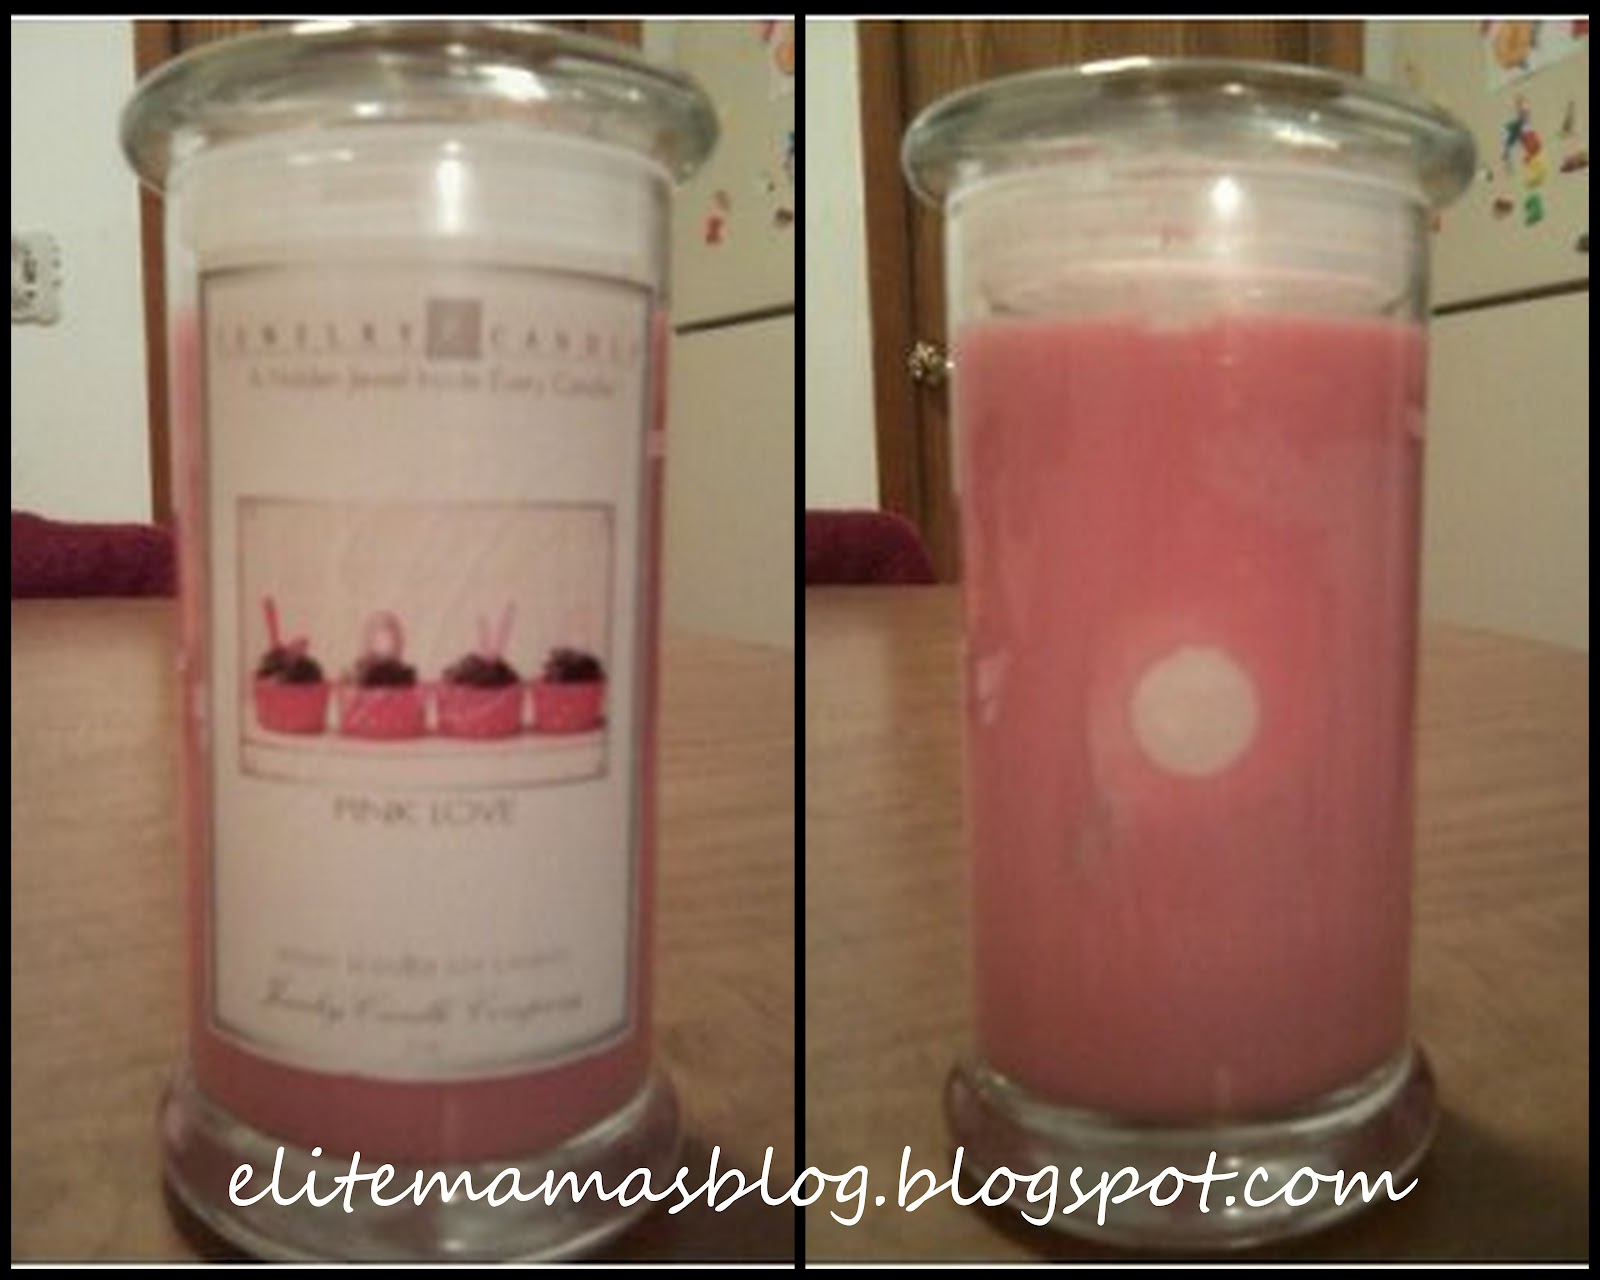 jewelry in a candle jewelry candles giveaway 2 9 22 10 6 a look 5679